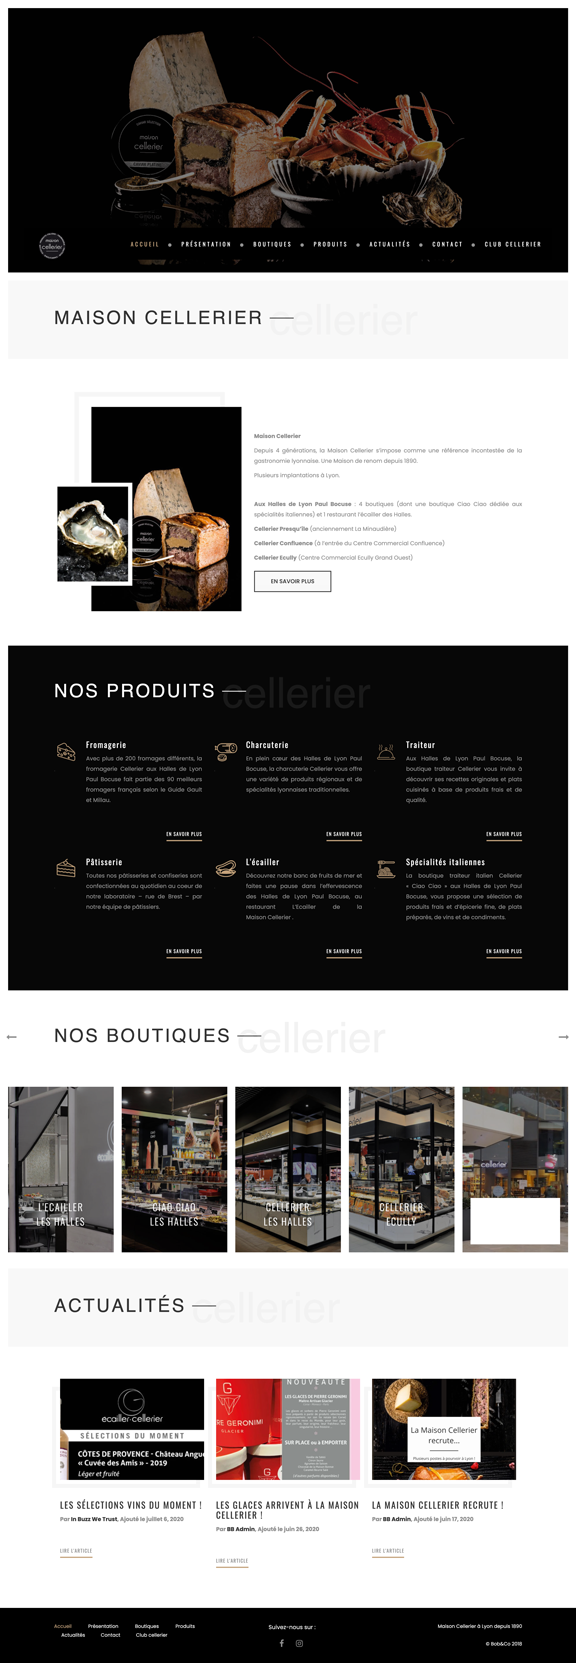 Maison Cellerier Un site developpé par BobandCo